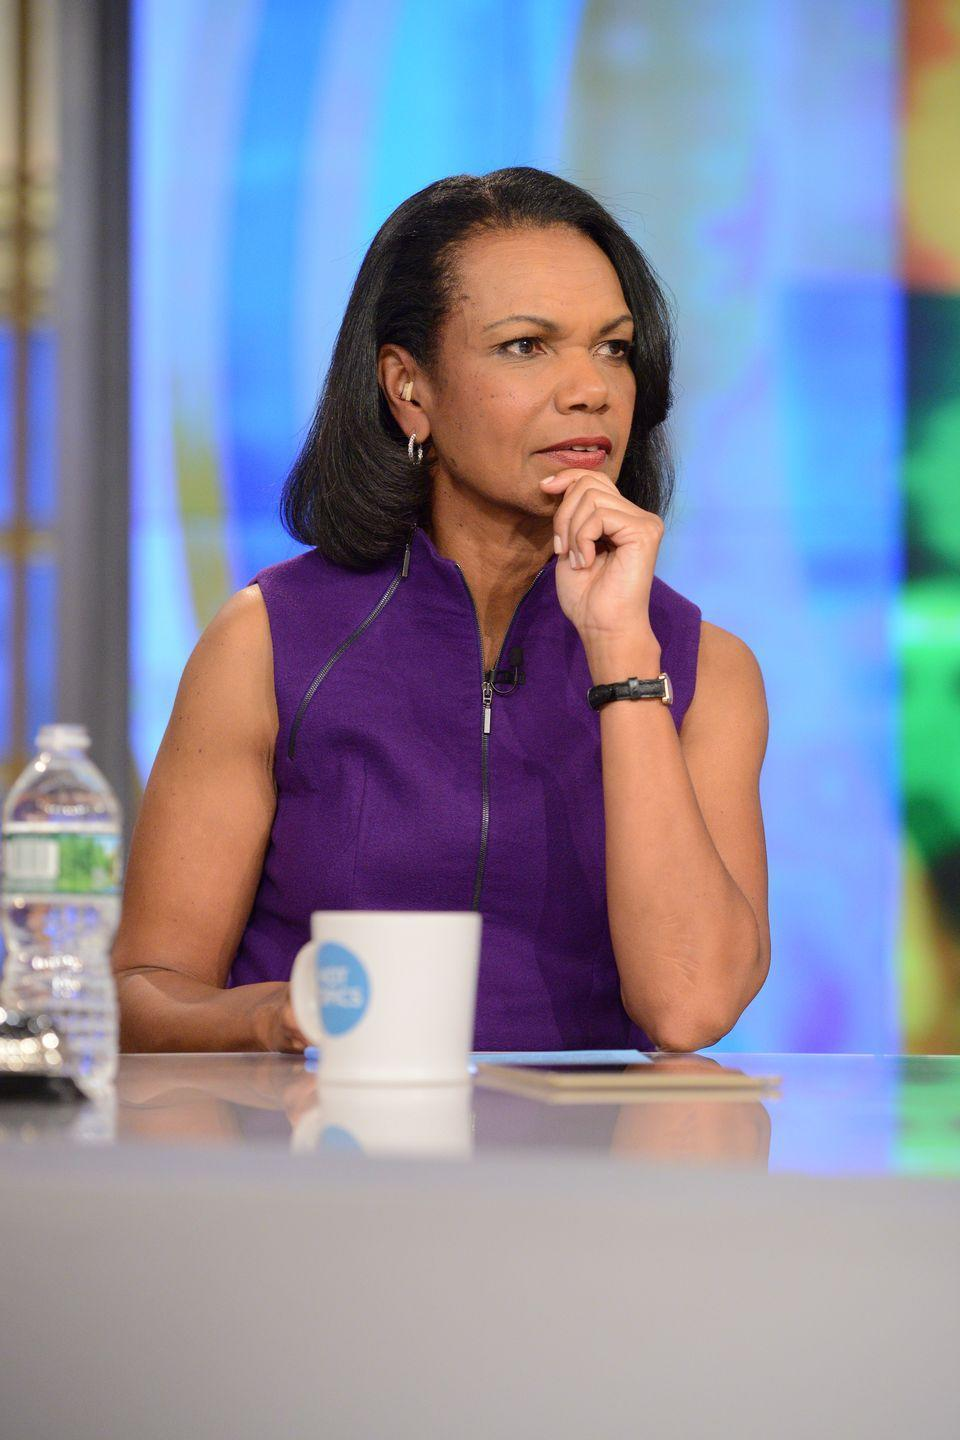 <p><strong>Claim to fame: </strong>Politician, diplomat</p><p><strong>Why she's extraordinary: </strong>Currently the director of Stanford University's Hoover Institution, from 2005 to 2009, Rice held the post of Secretary of State under George W. Bush's presidency. She was the second woman and first Black woman to do so. </p>